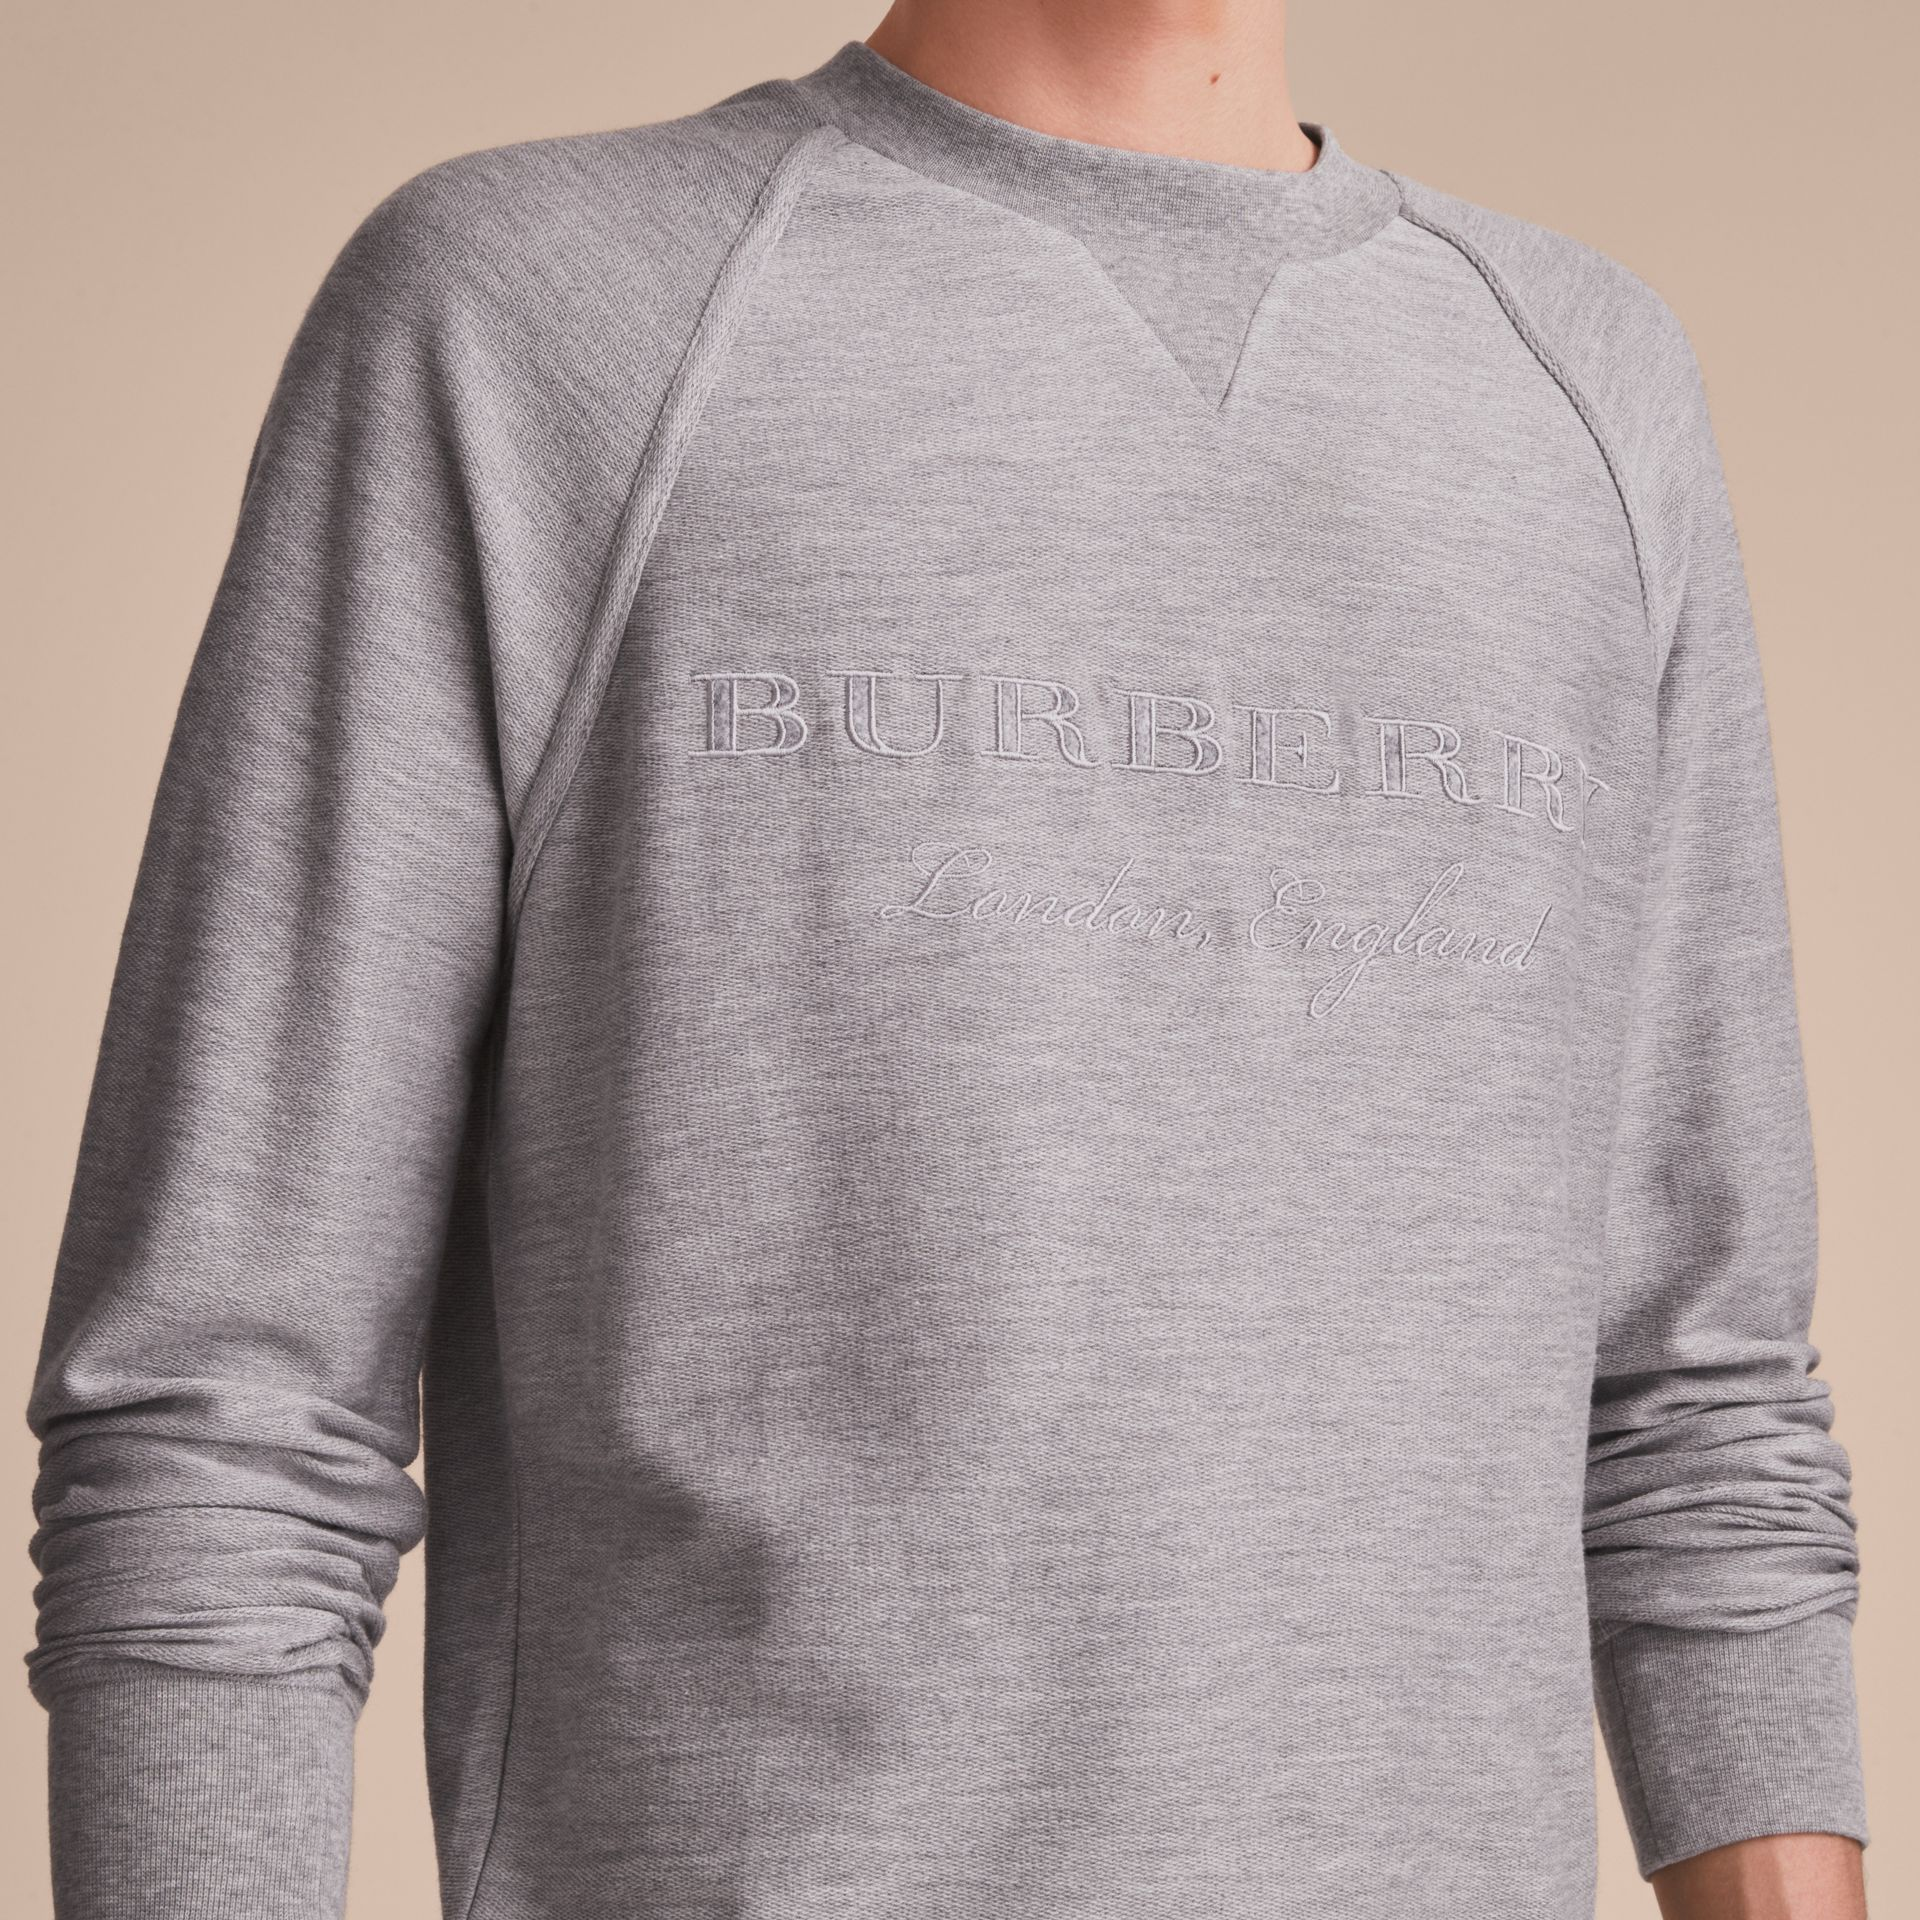 Embroidered Motif Cotton-blend Jersey Sweatshirt in Mid Grey Melange - Men | Burberry - gallery image 5